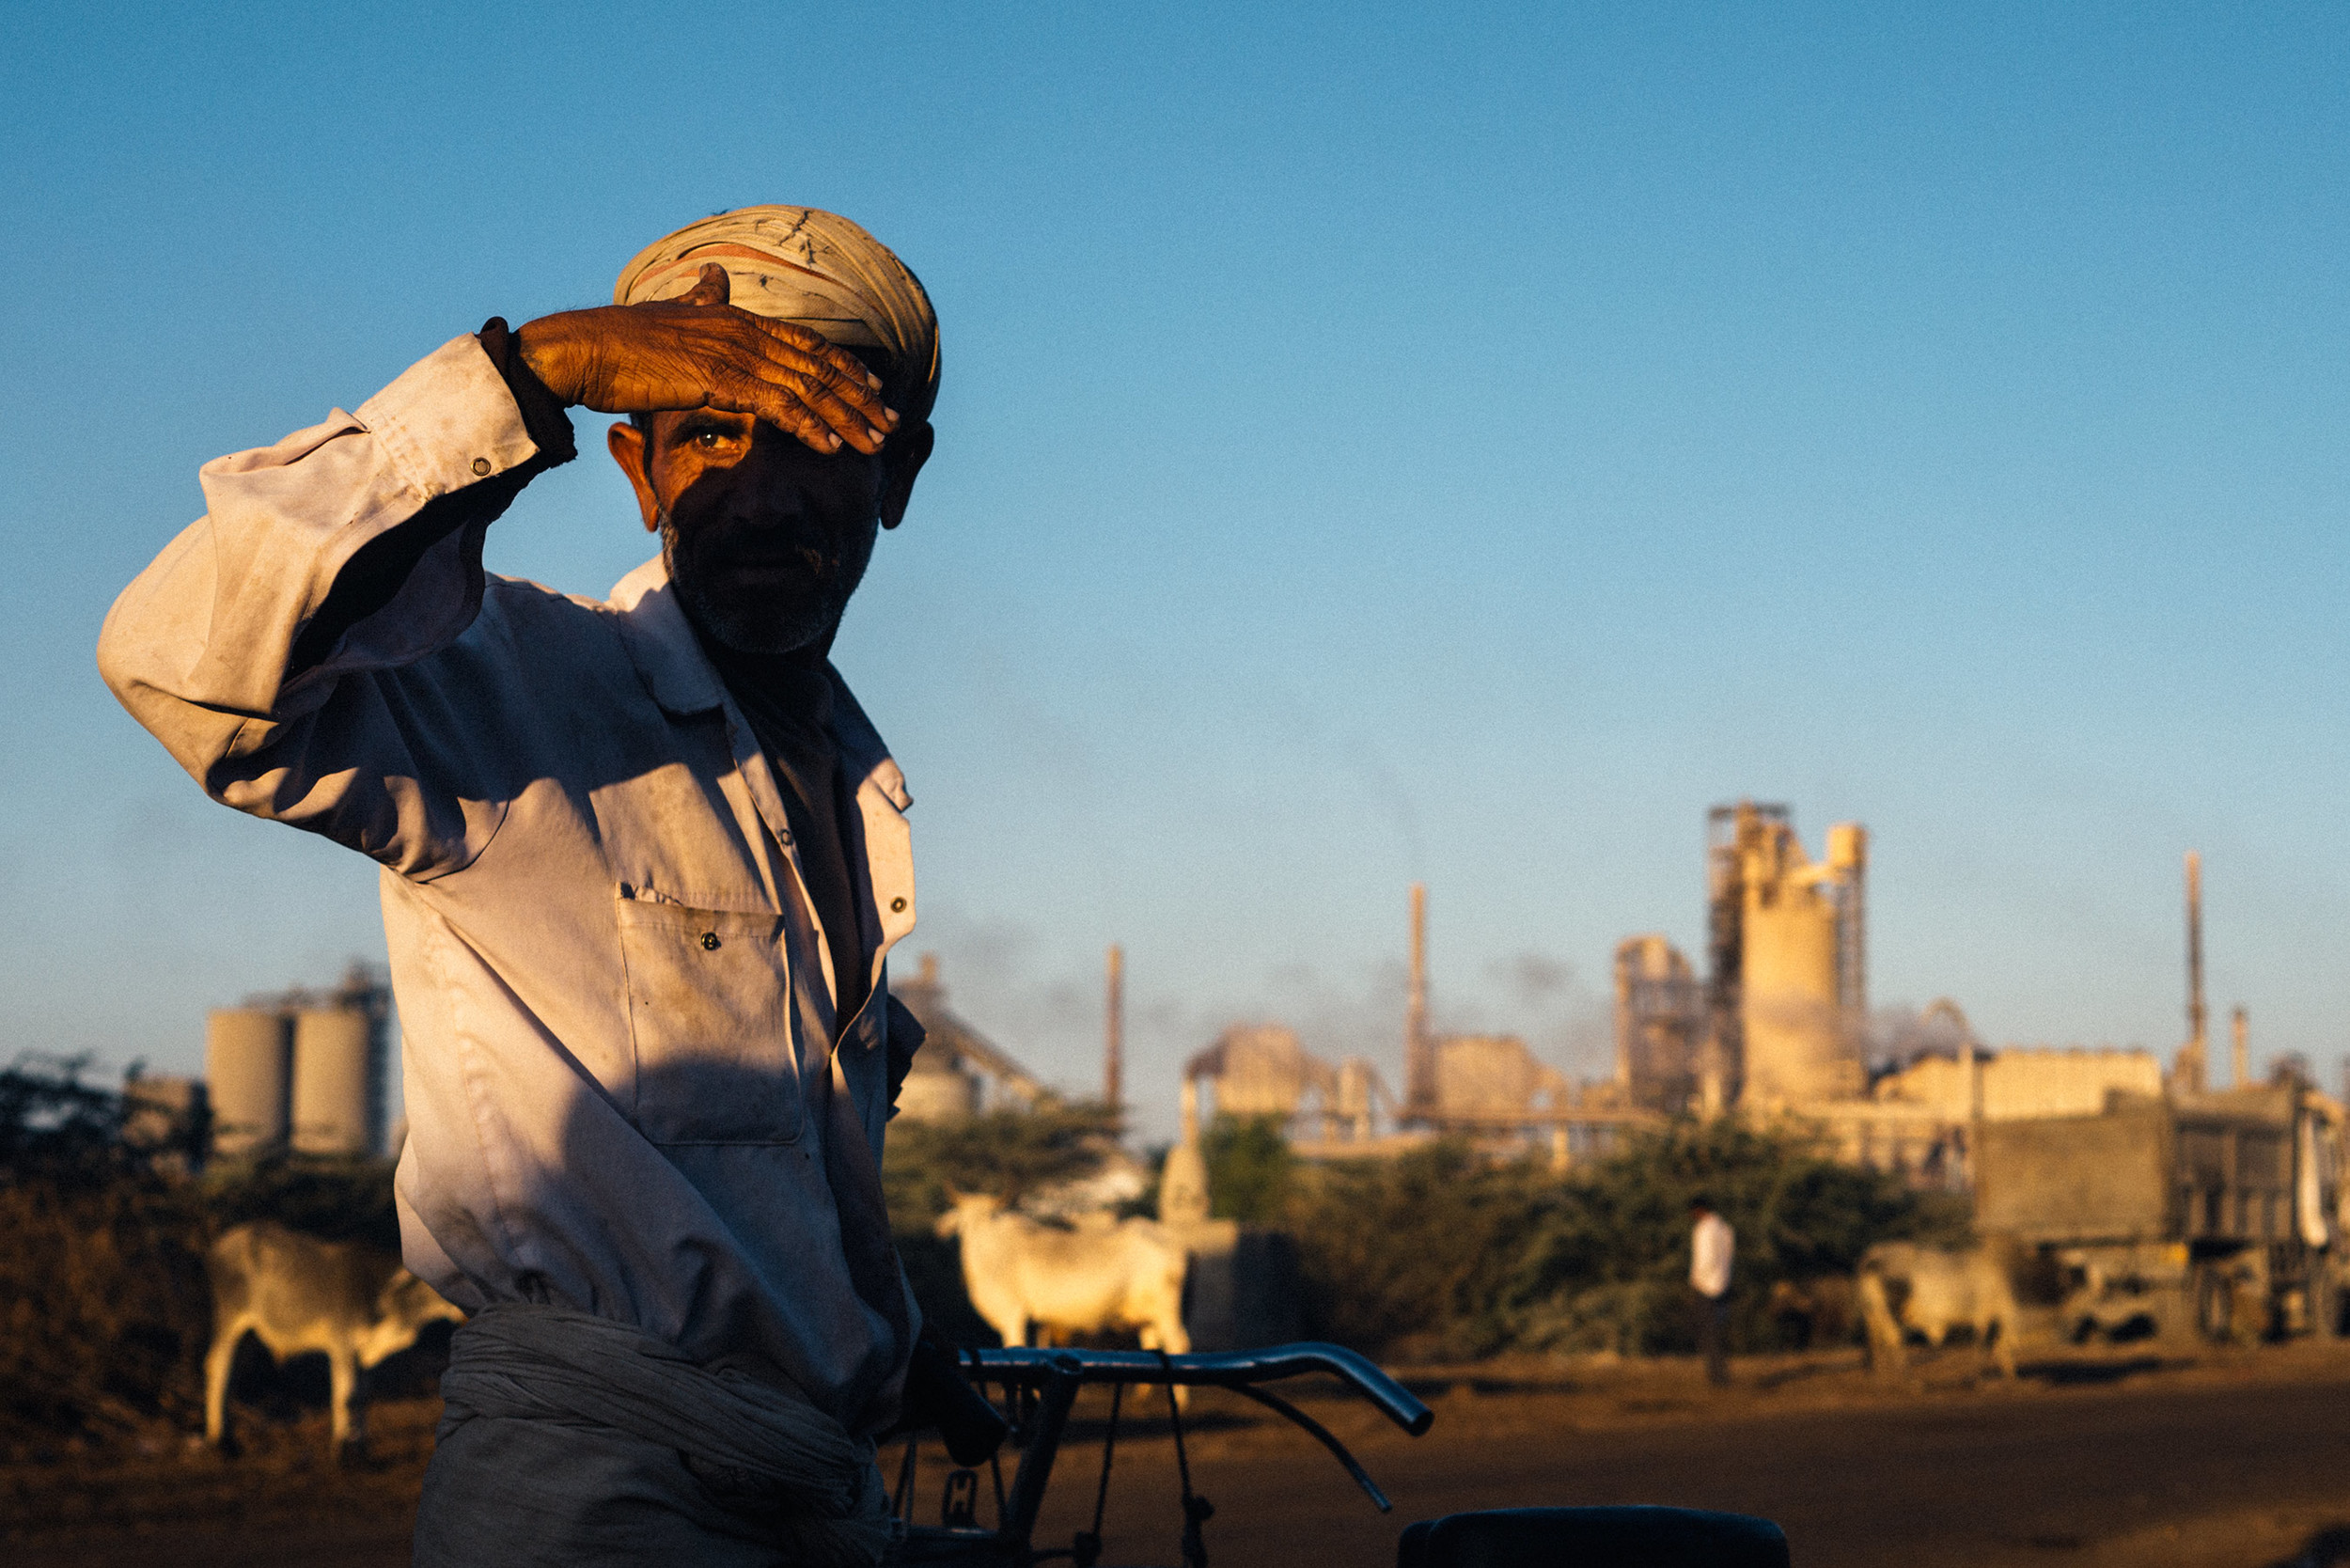 Man with bicycle in front of chemical plant